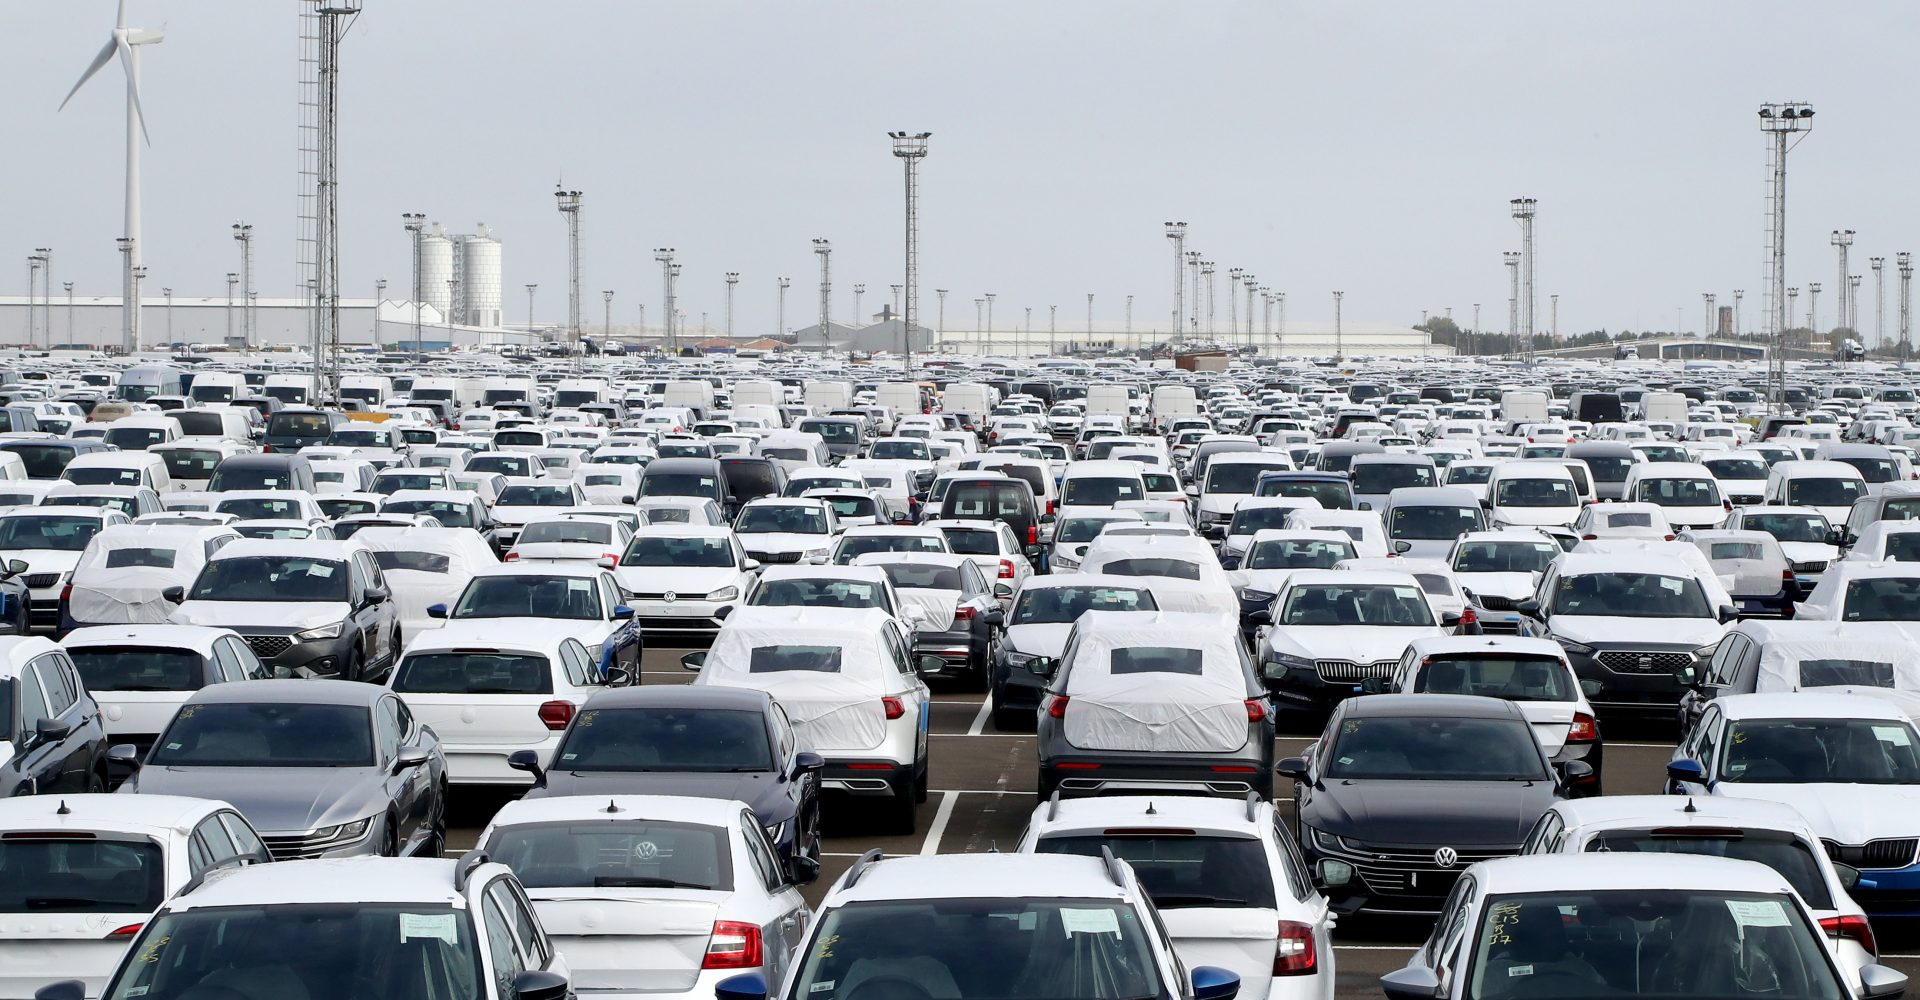 Car production falls again amid subdued demand in UK and overseas